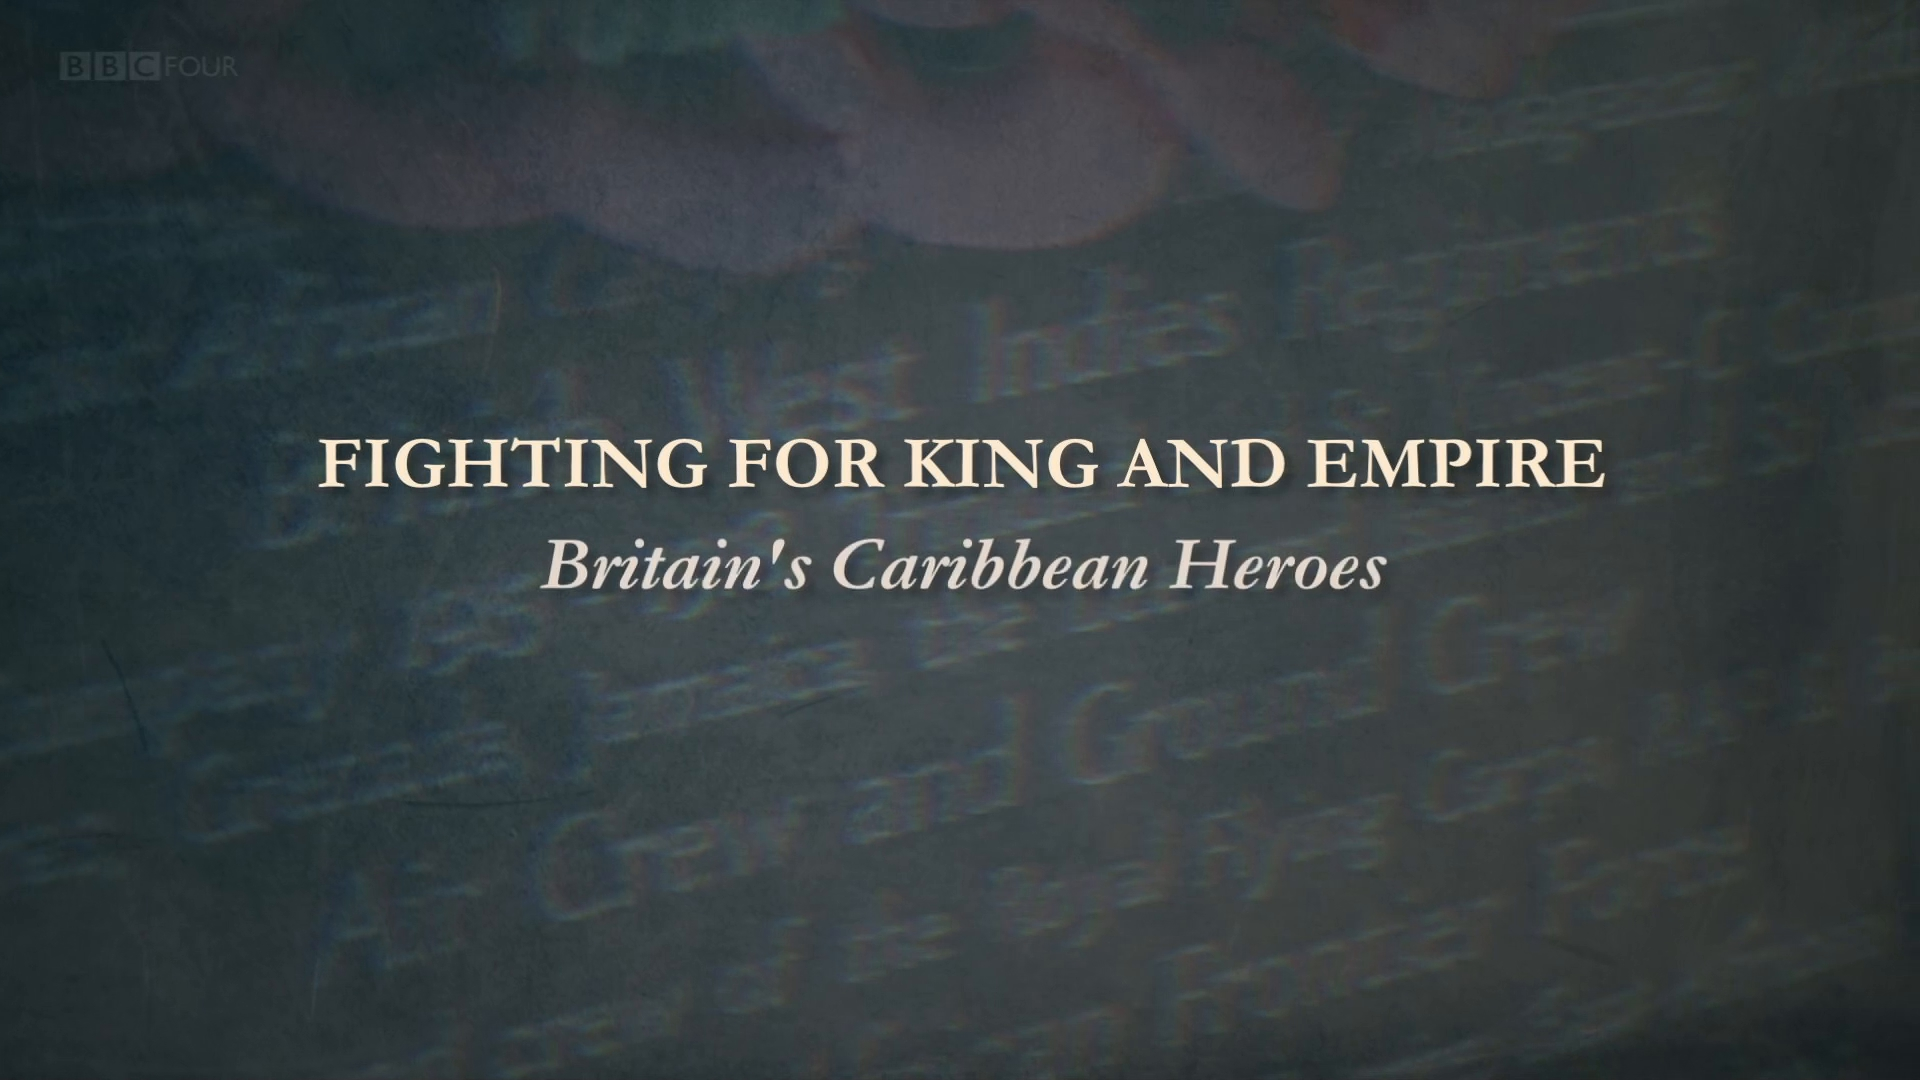 BBC - Fighting for King and Empire: Britain's Caribbean Heroes (2015)